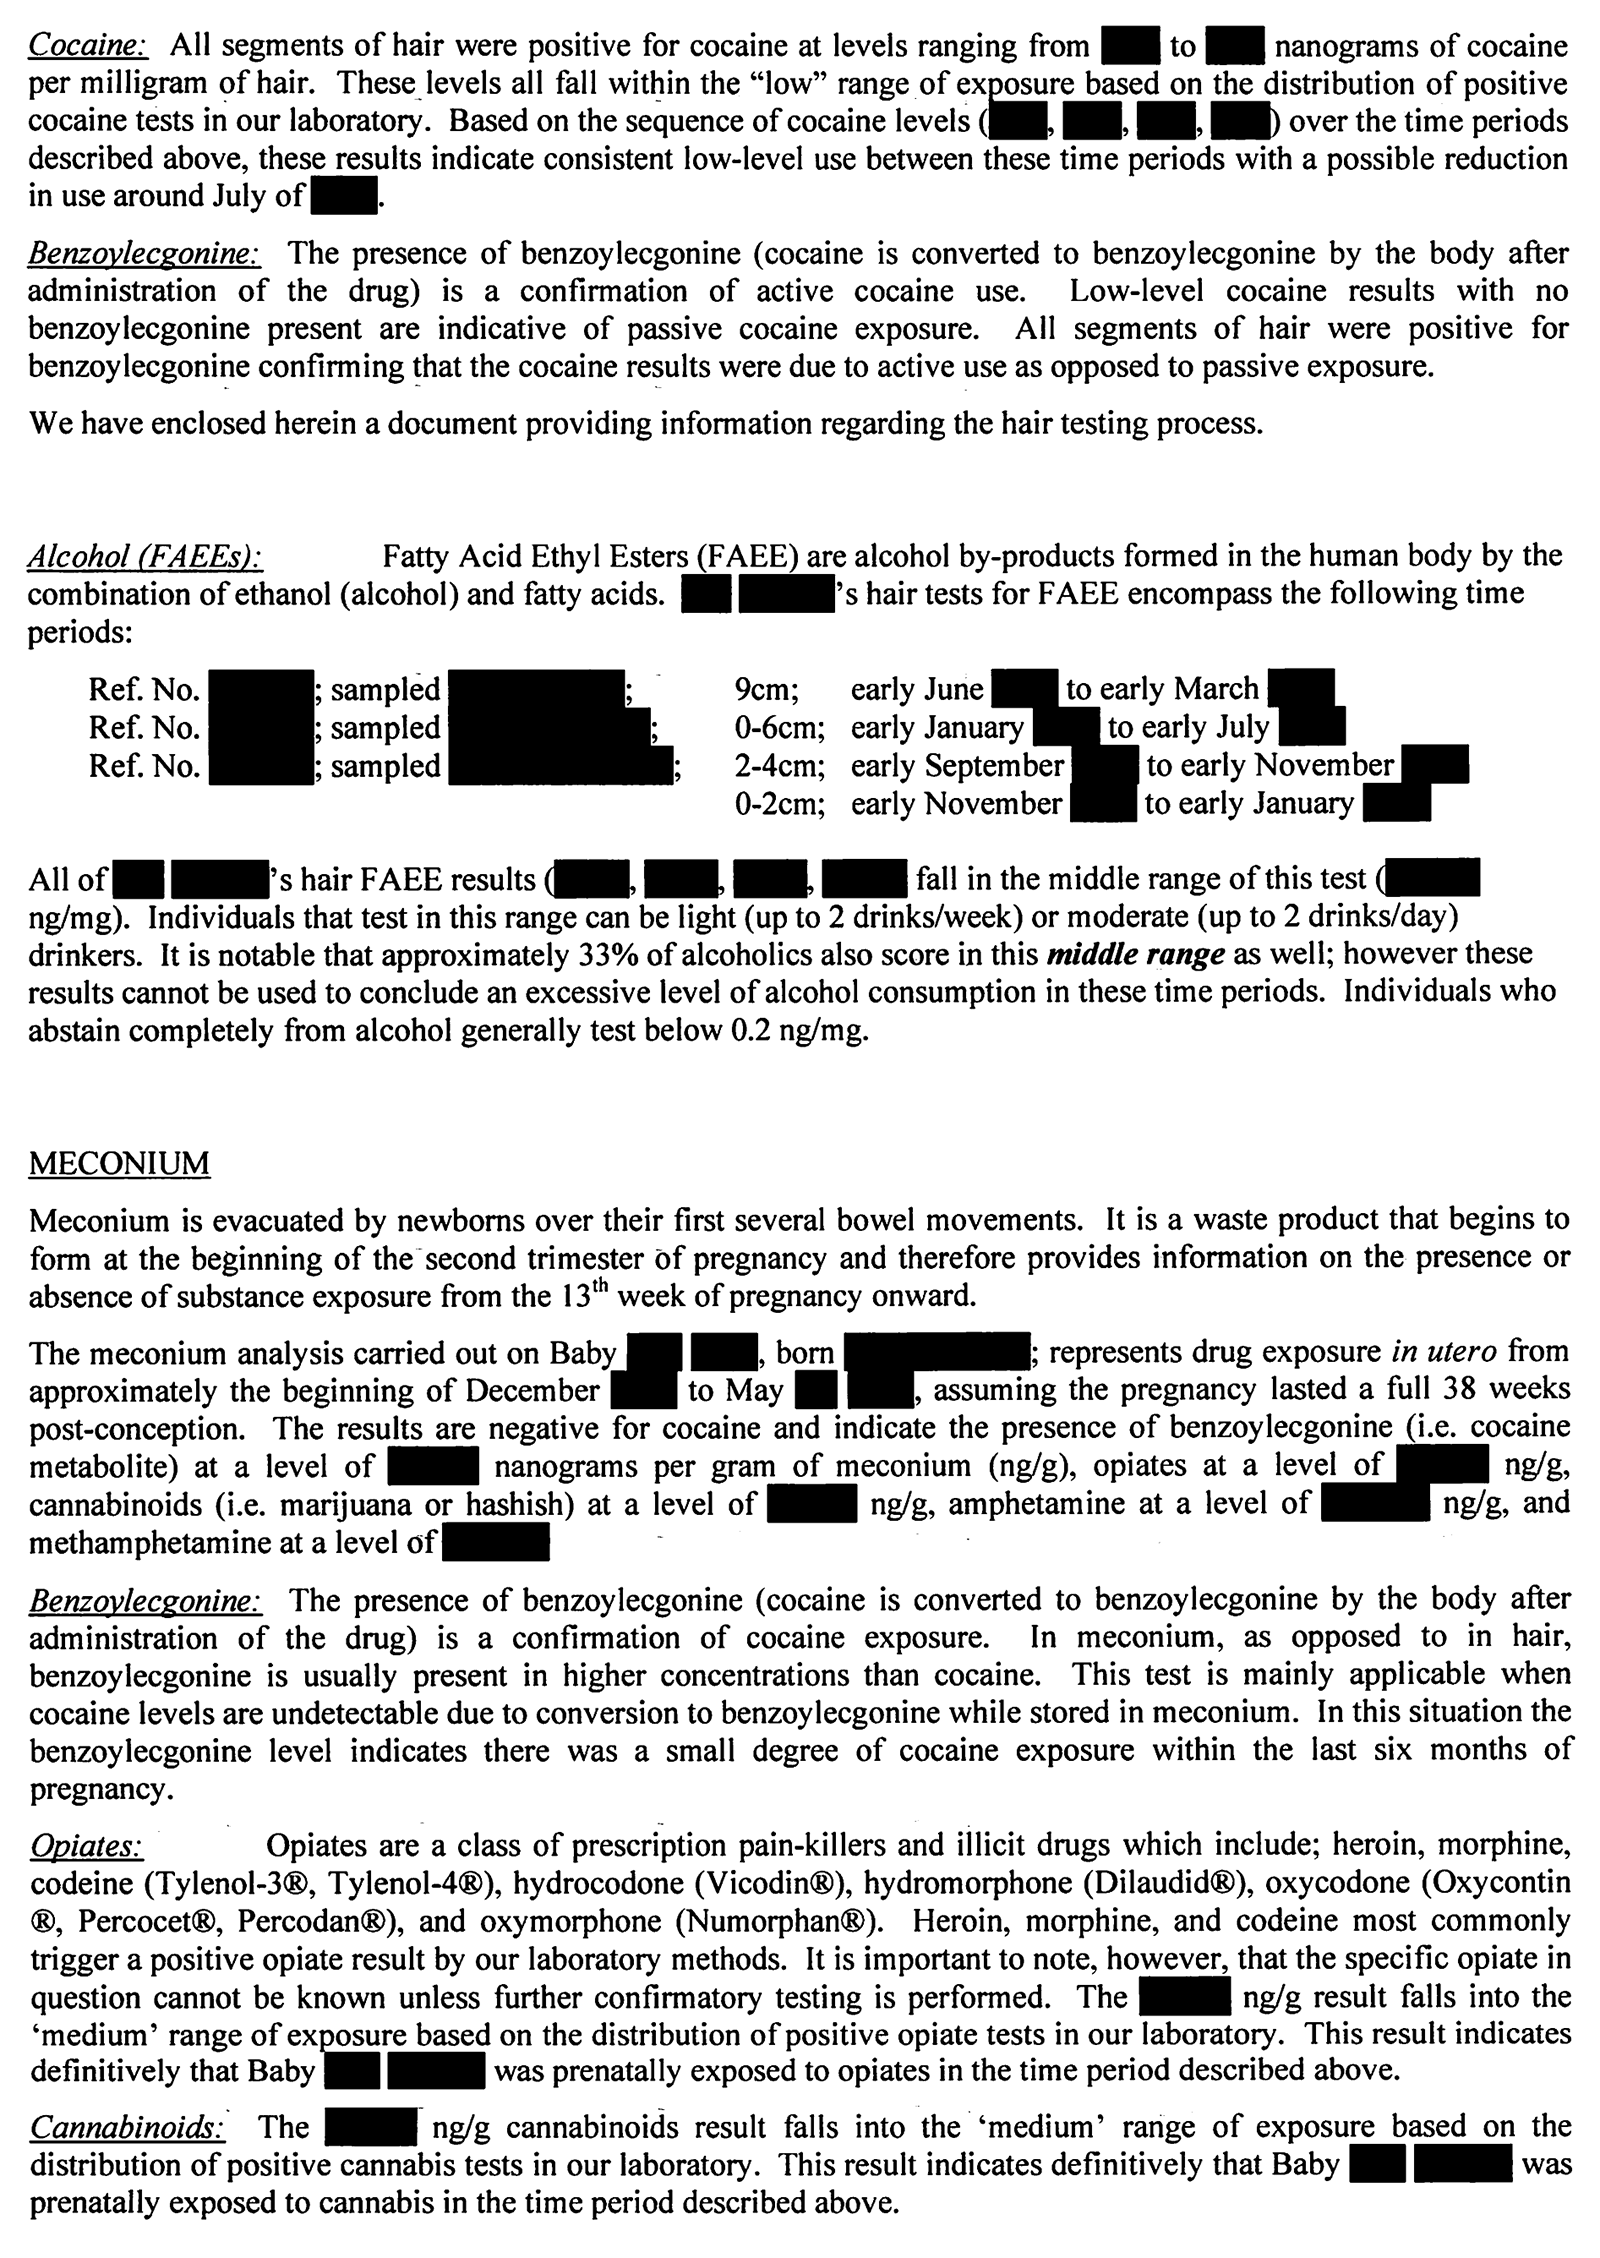 Report Of The Motherisk Hair Analysis Independent Review